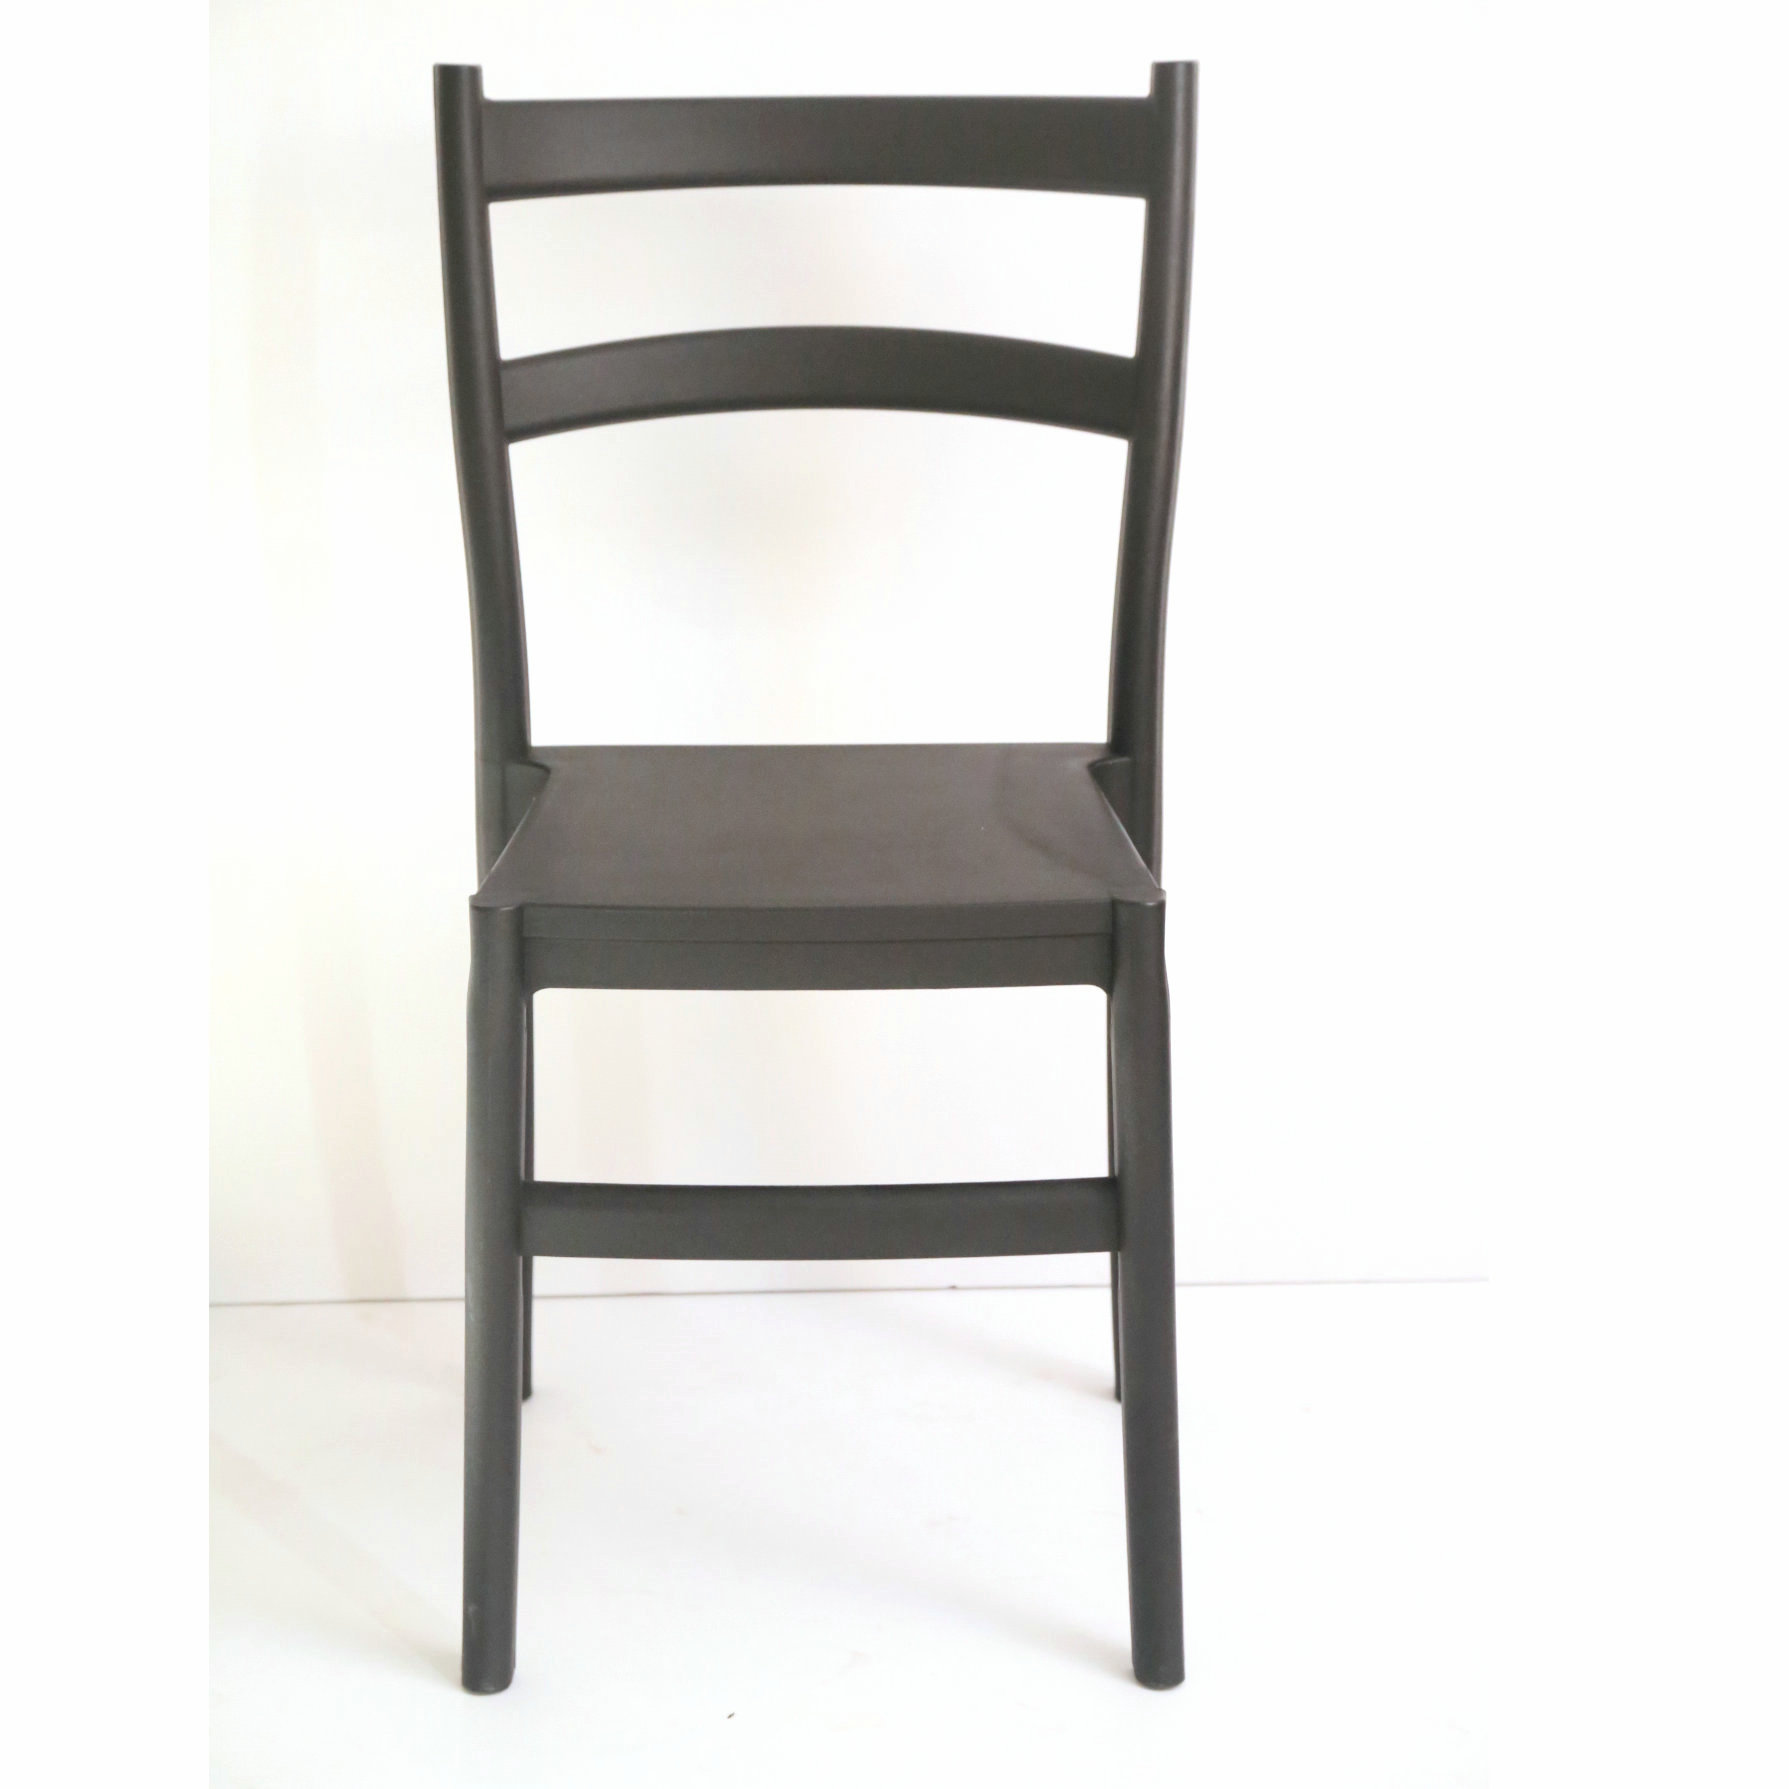 Stacking Dining Chairs Wholesale Garden Line Stacking Chair Outdoor Furniture Plastic Dining Chair Buy Plastic Dining Chair Outdoor Furniture Wholesale Garden Line